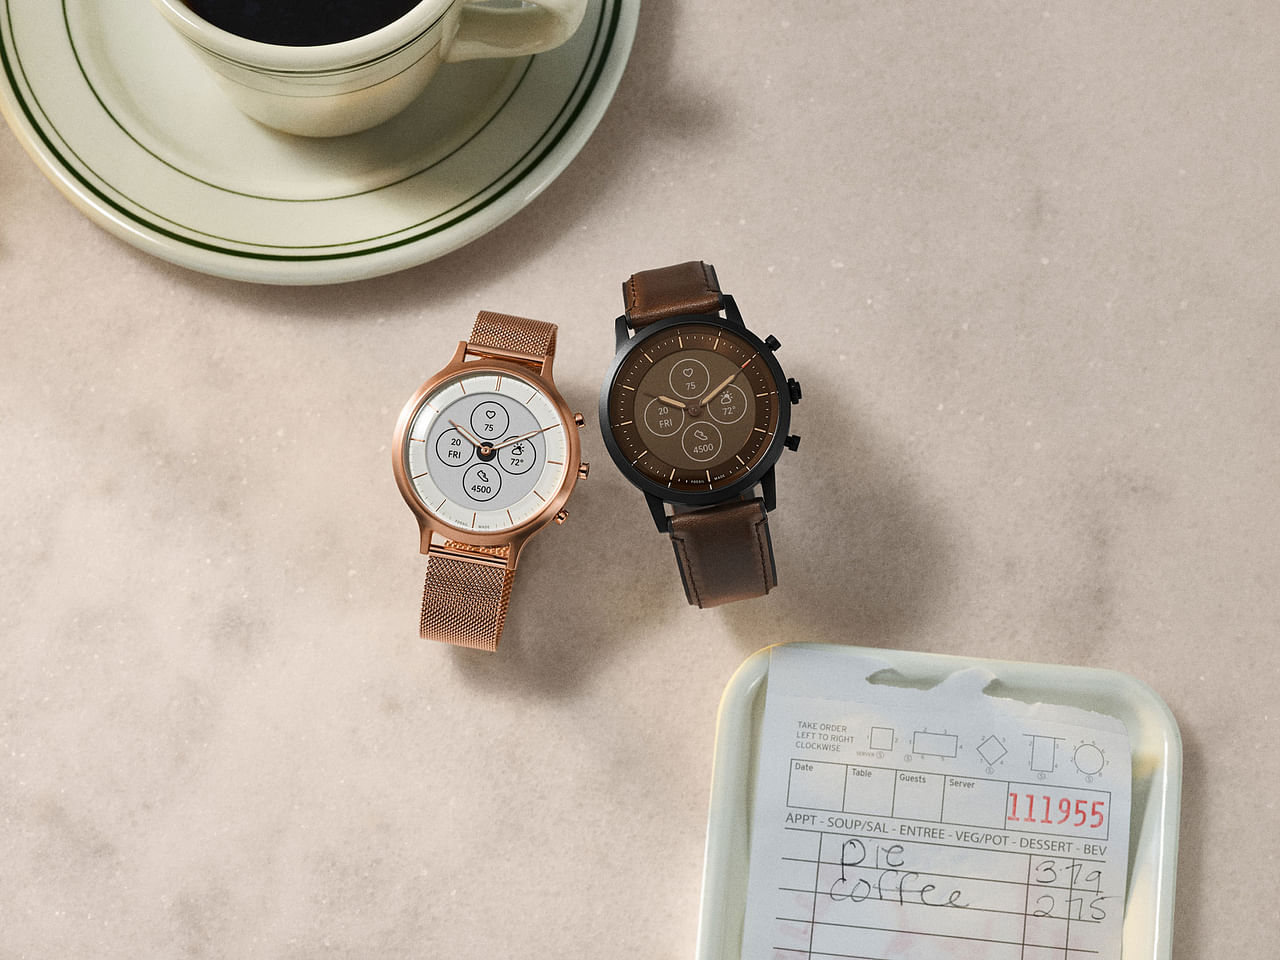 Tech Review Fossil Hybrid Hr Collider Is The Analogue Smartwatch You Never Knew You Wanted Wearables News Top Stories The Straits Times